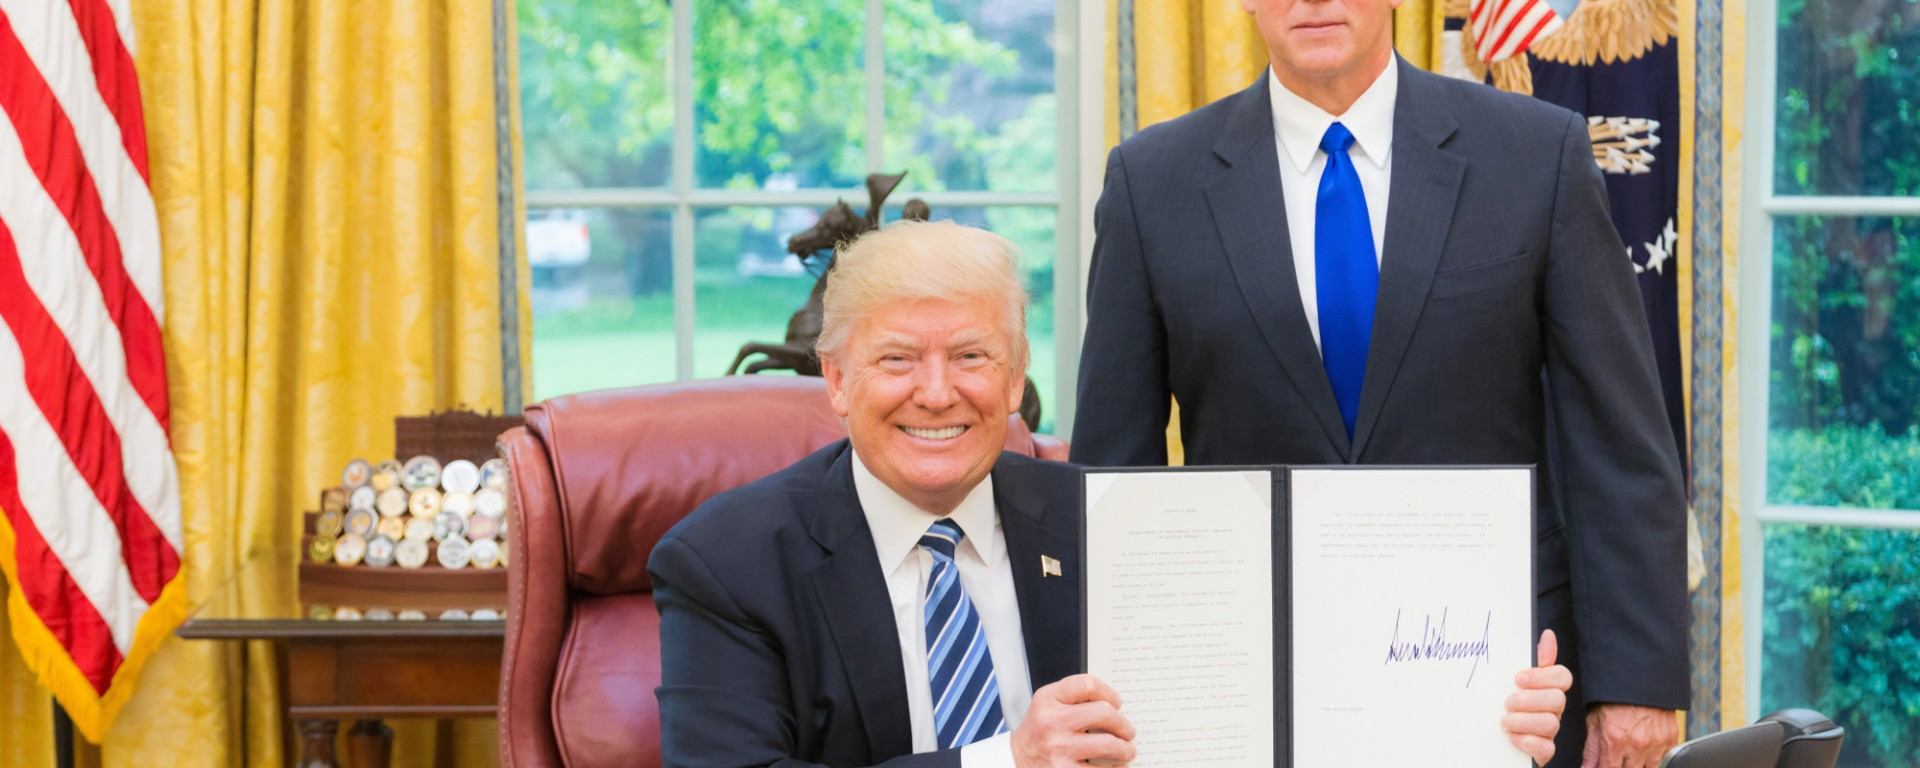 Donald J Trump with Mike Pence. Image: History in HD on Unsplash